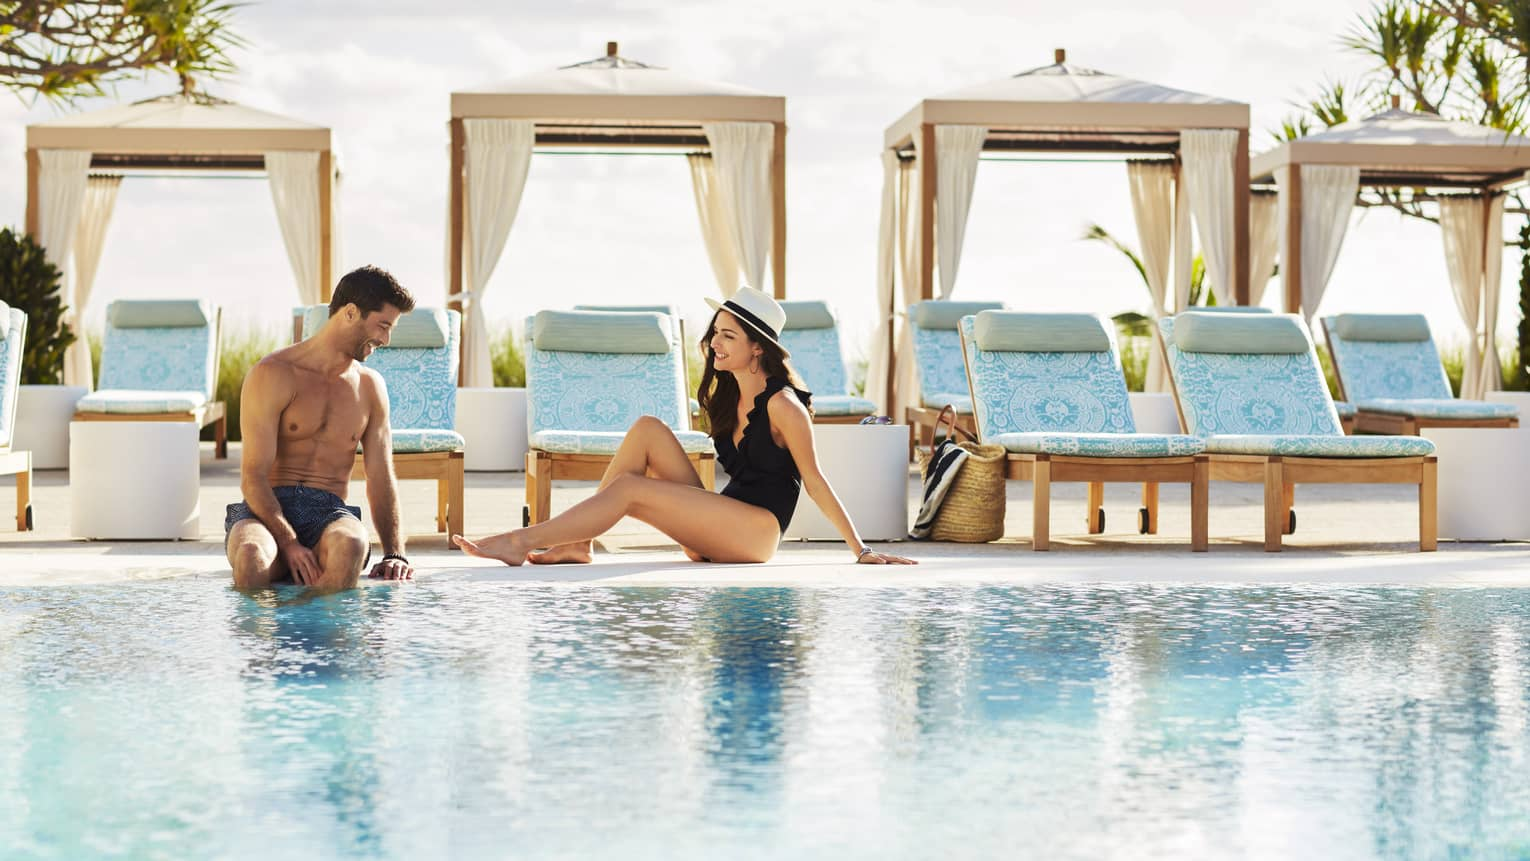 Man and woman wearing swimsuits sit on edge of outdoor swimming pool in front of cabanas